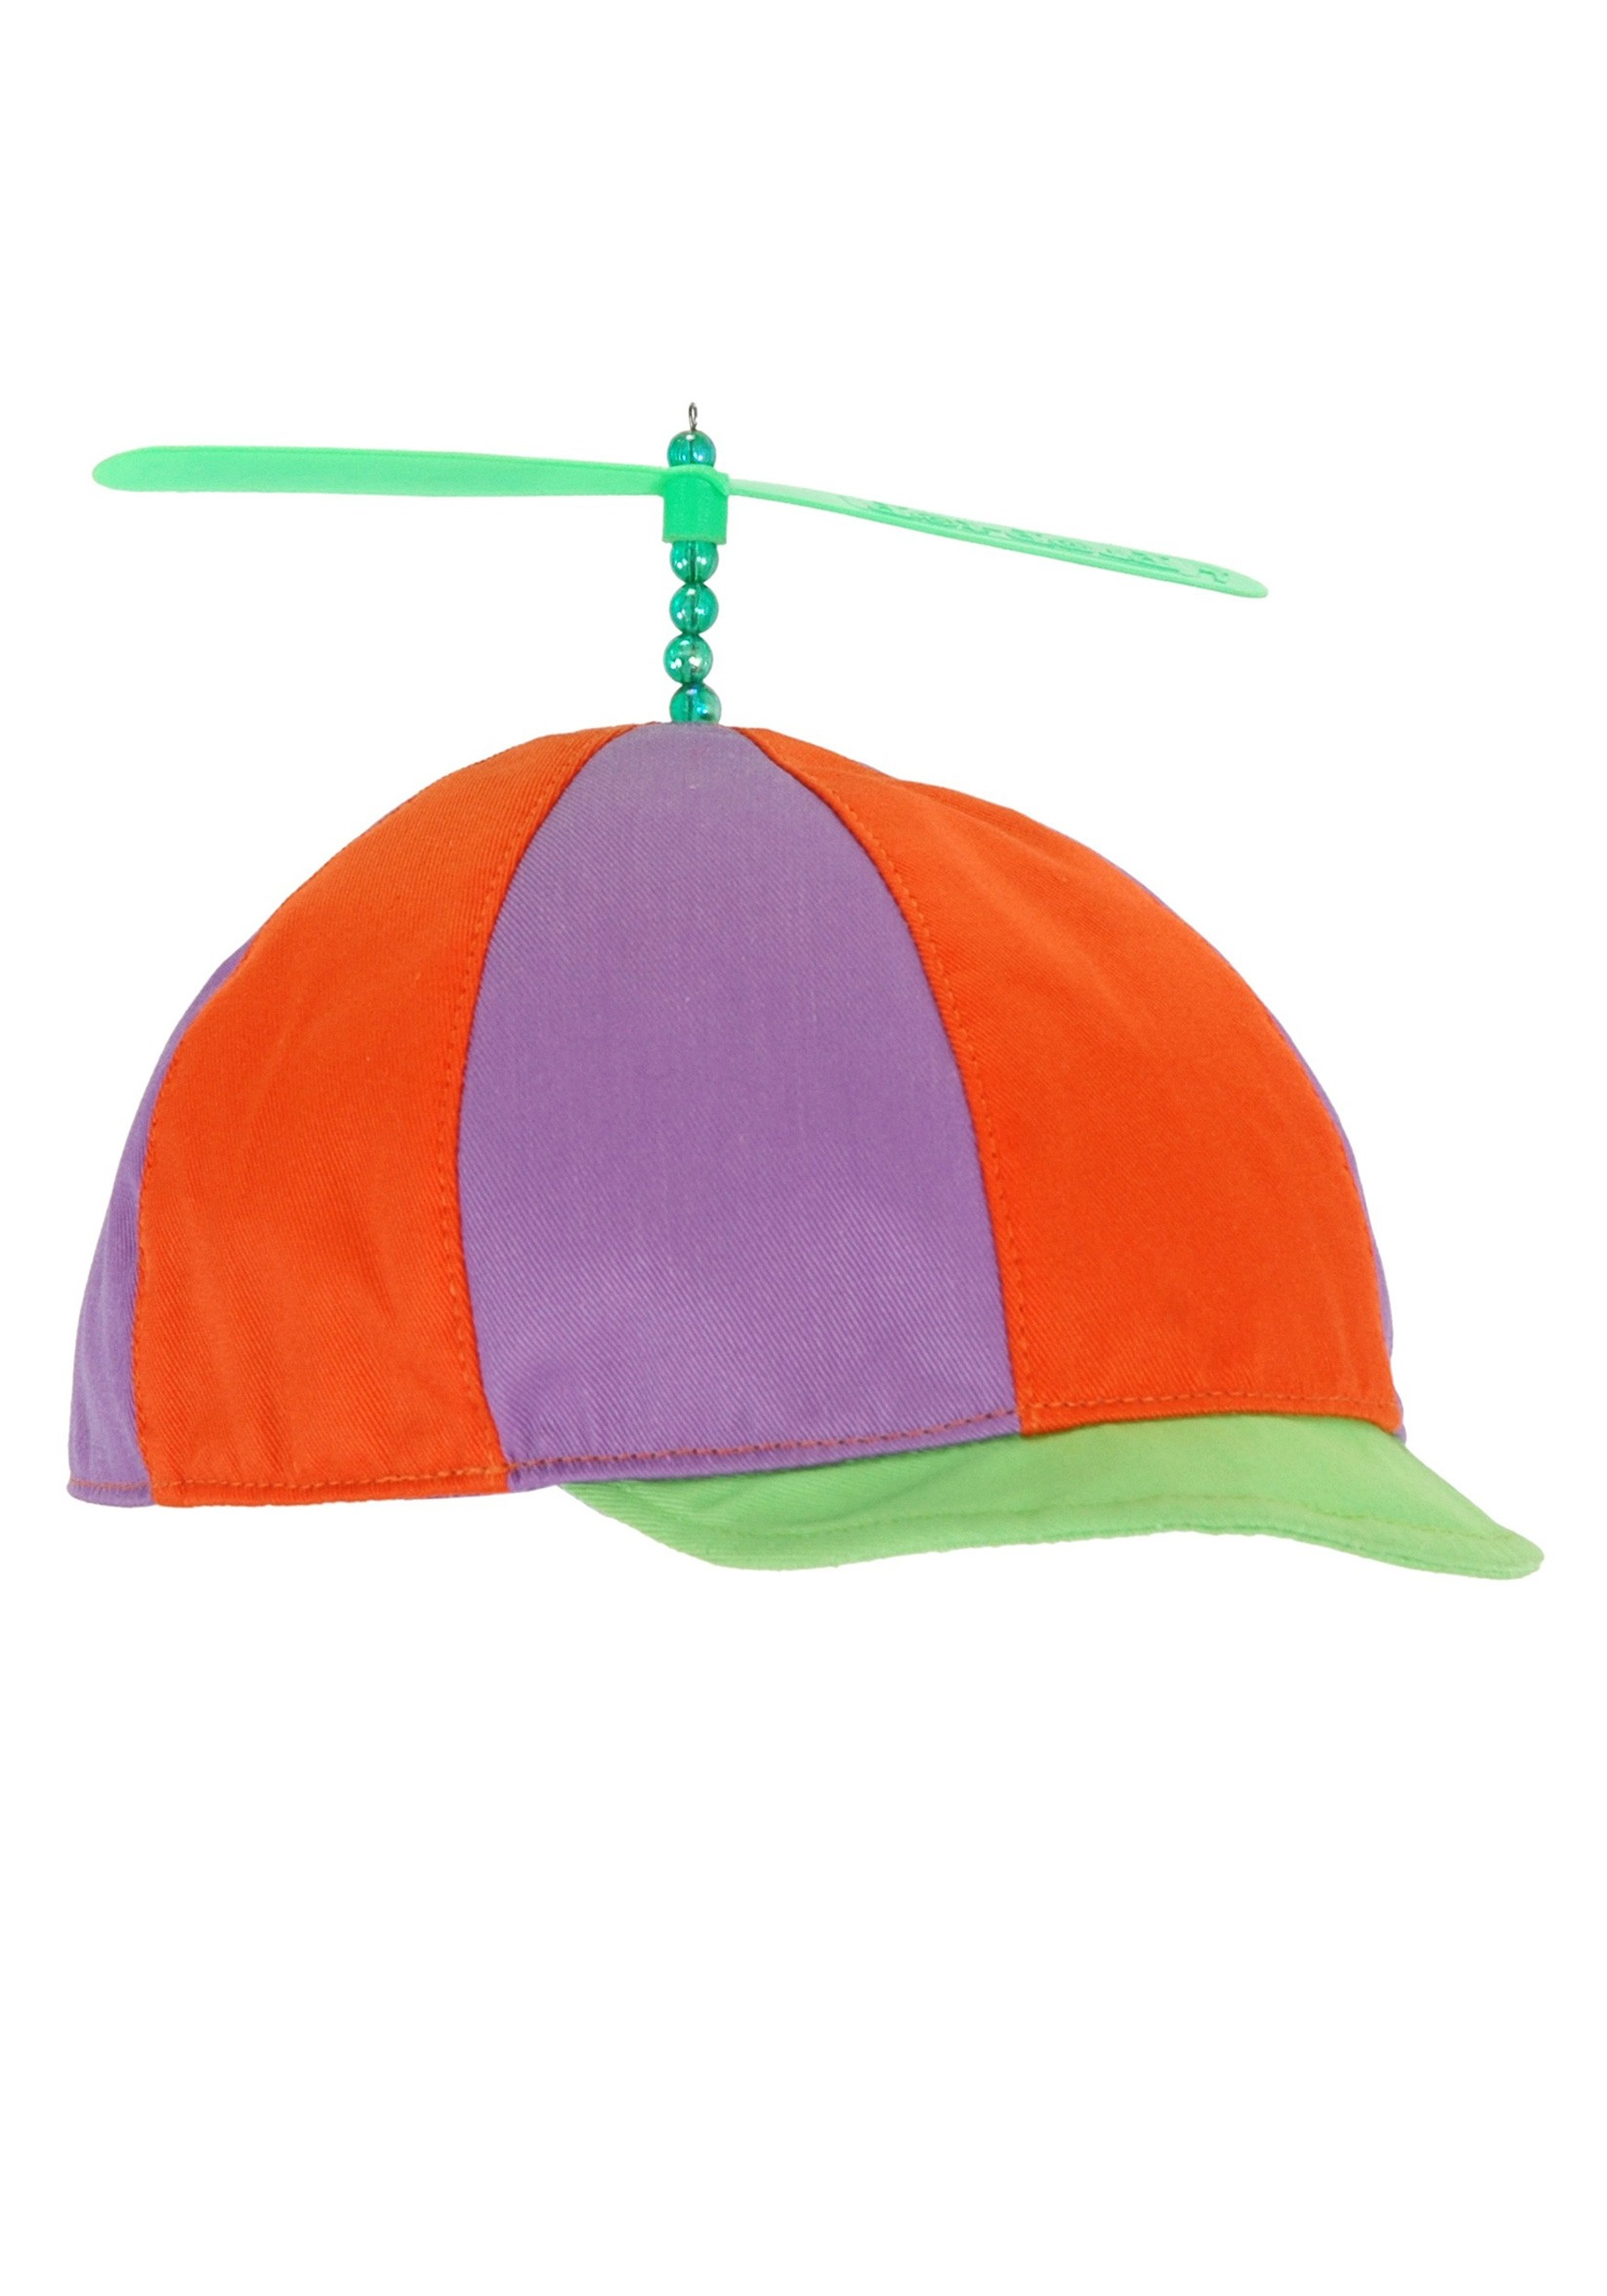 tweedle dee and tweedle dum beanie hat